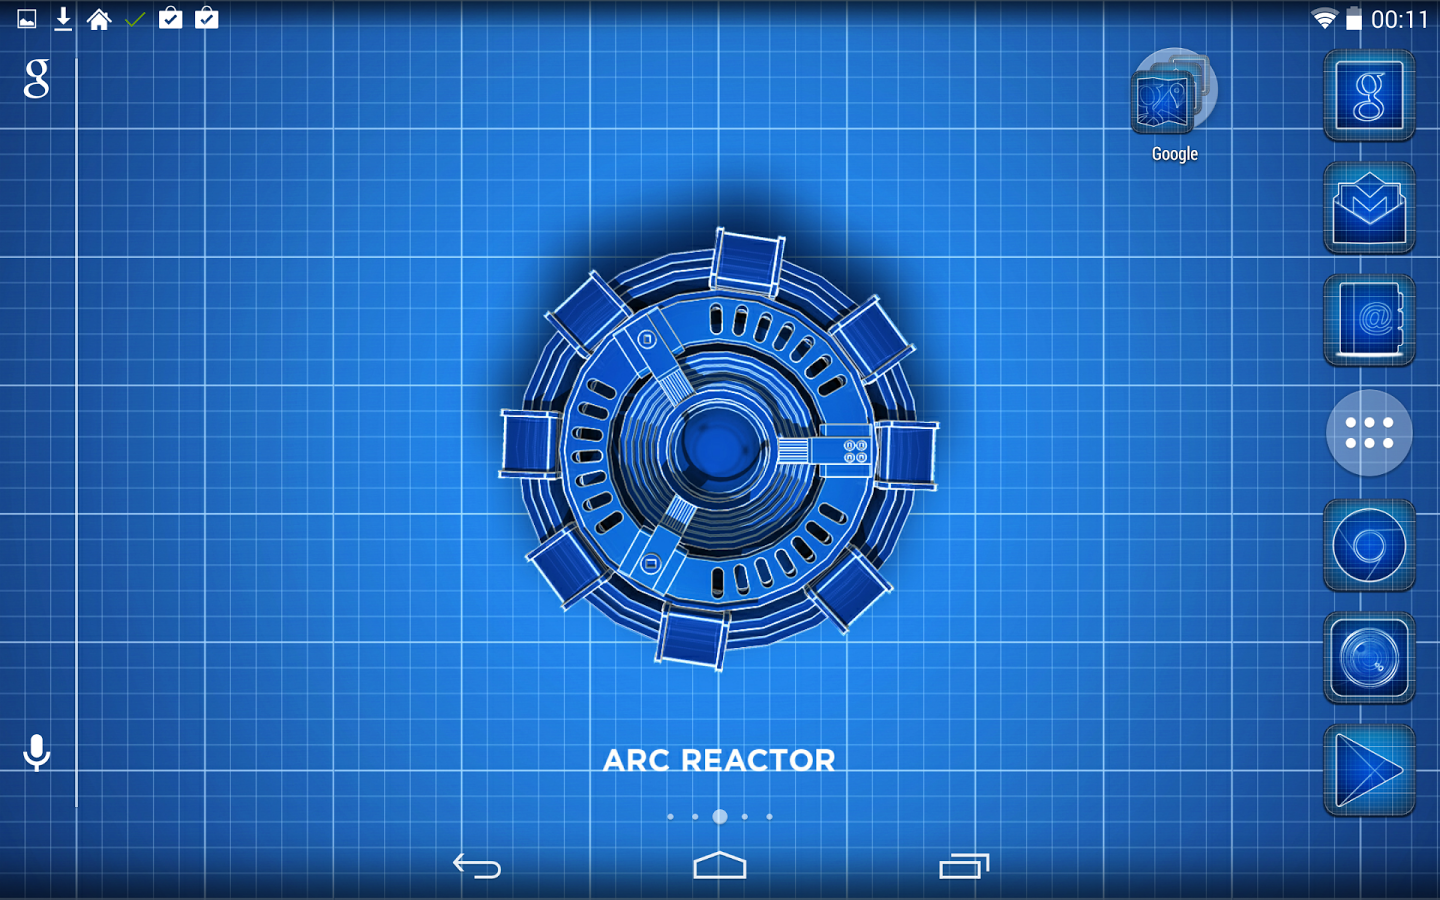 Blueprint ironman theme v101 apk rskmania requirements android 23 overview a blueprint theme of ironmans mark vii suit work on apex adw nova launchers malvernweather Gallery